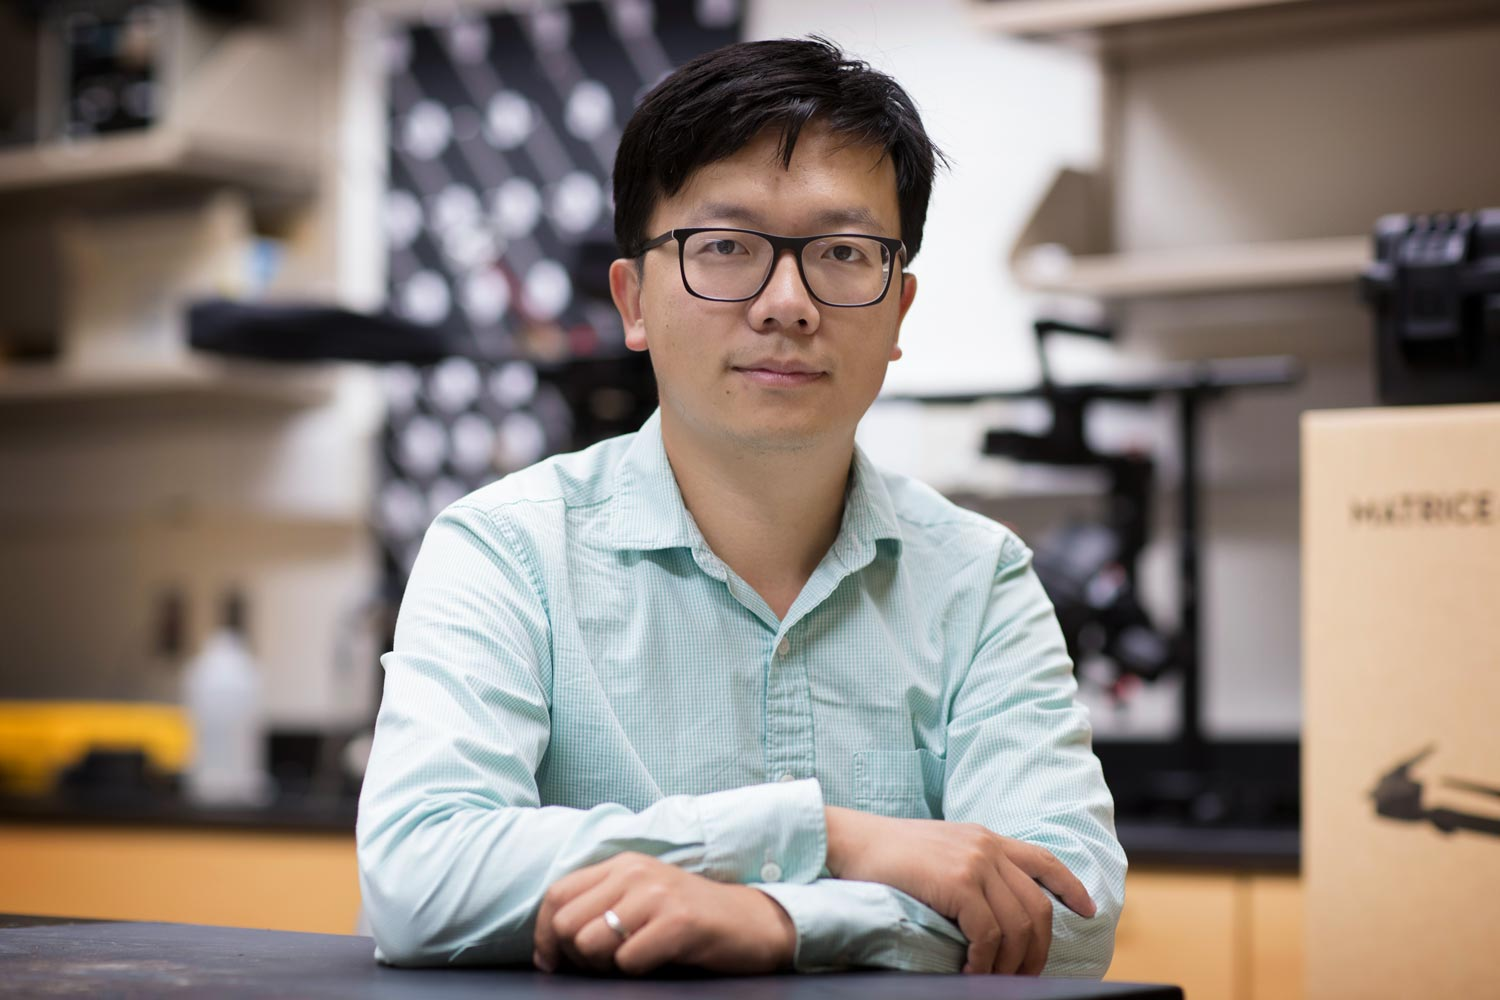 UVA terrestrial ecologist Xi Yang designed the system that monitors sun-induced fluorescence, a byproduct of photosynthesis, to measure crop health.